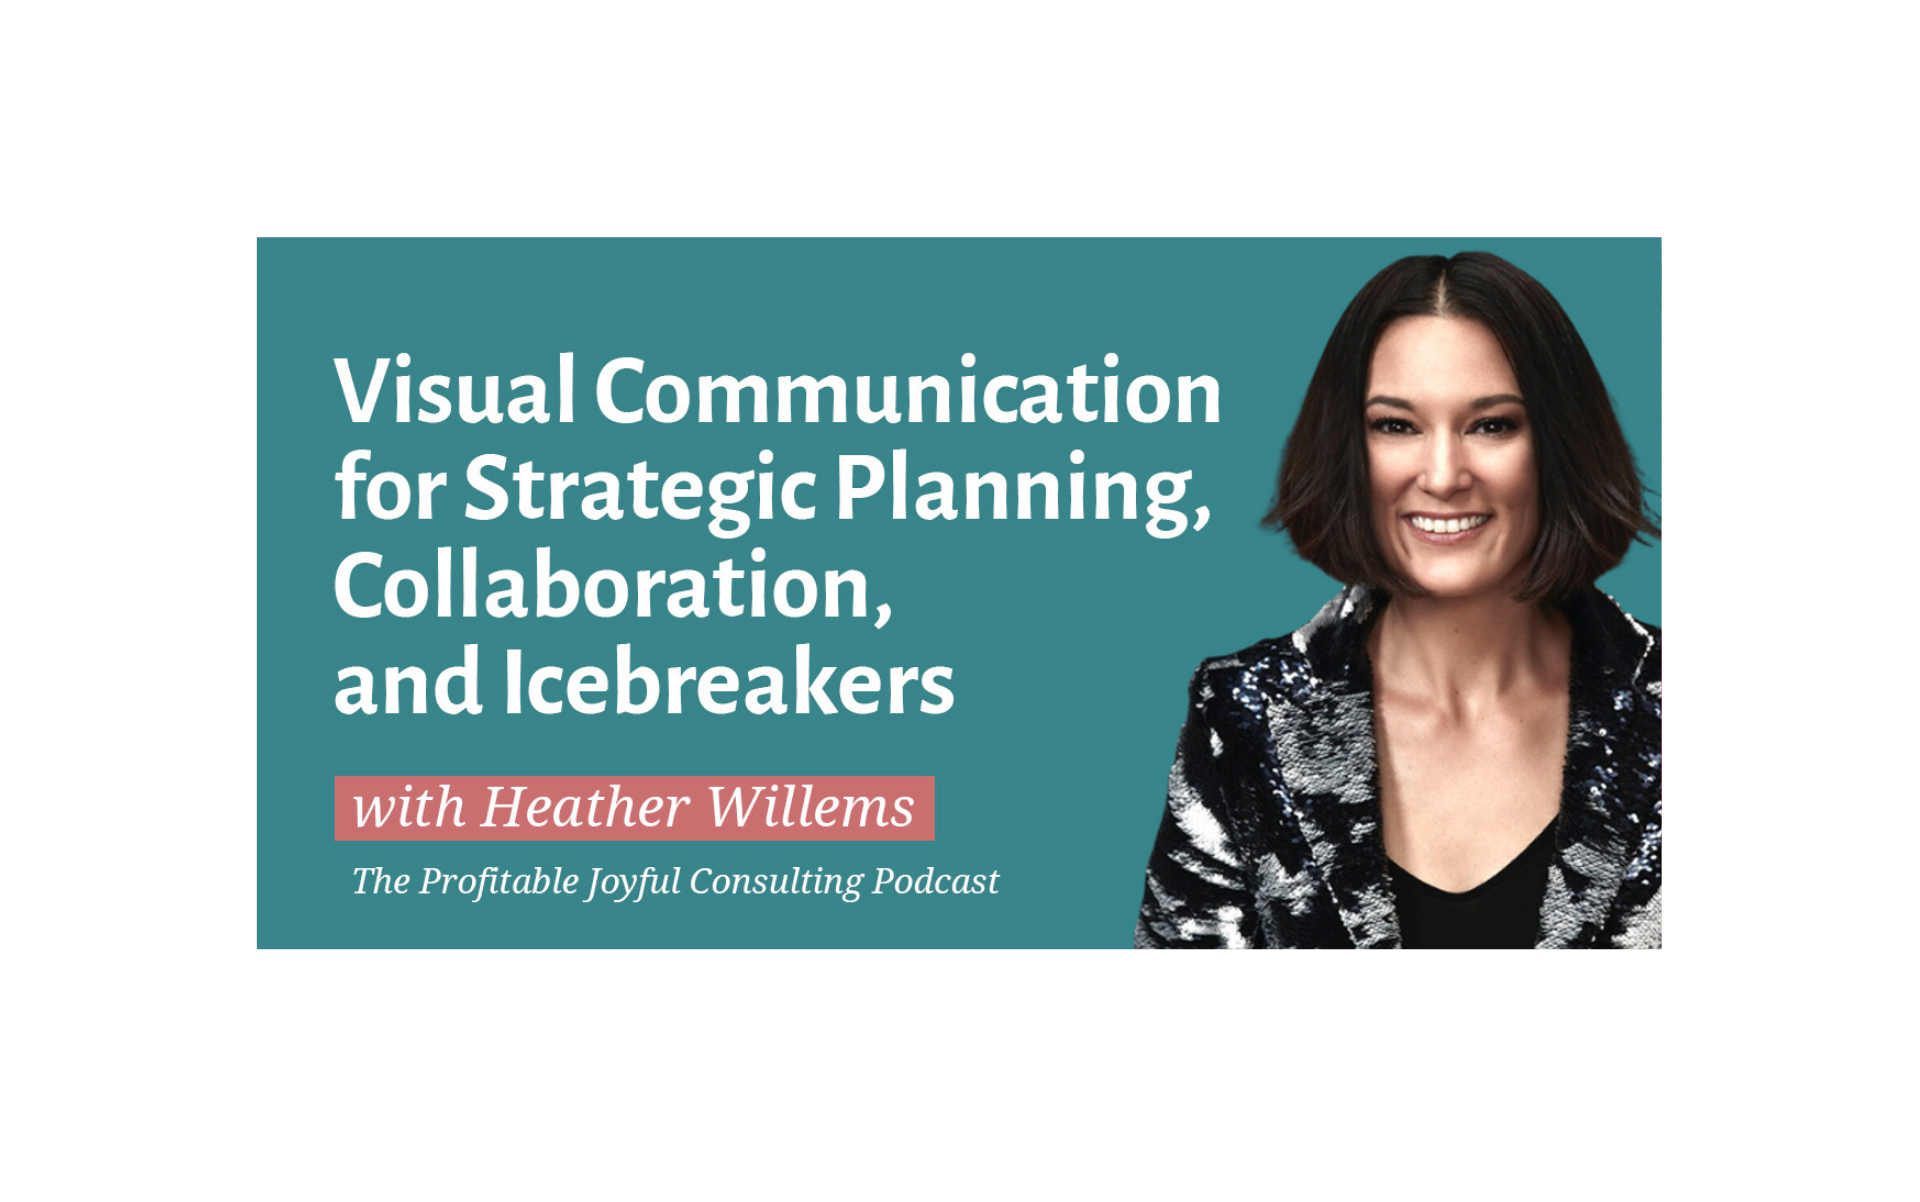 Visual Communication for Strategic Planning, Collaboration, and Icebreakers